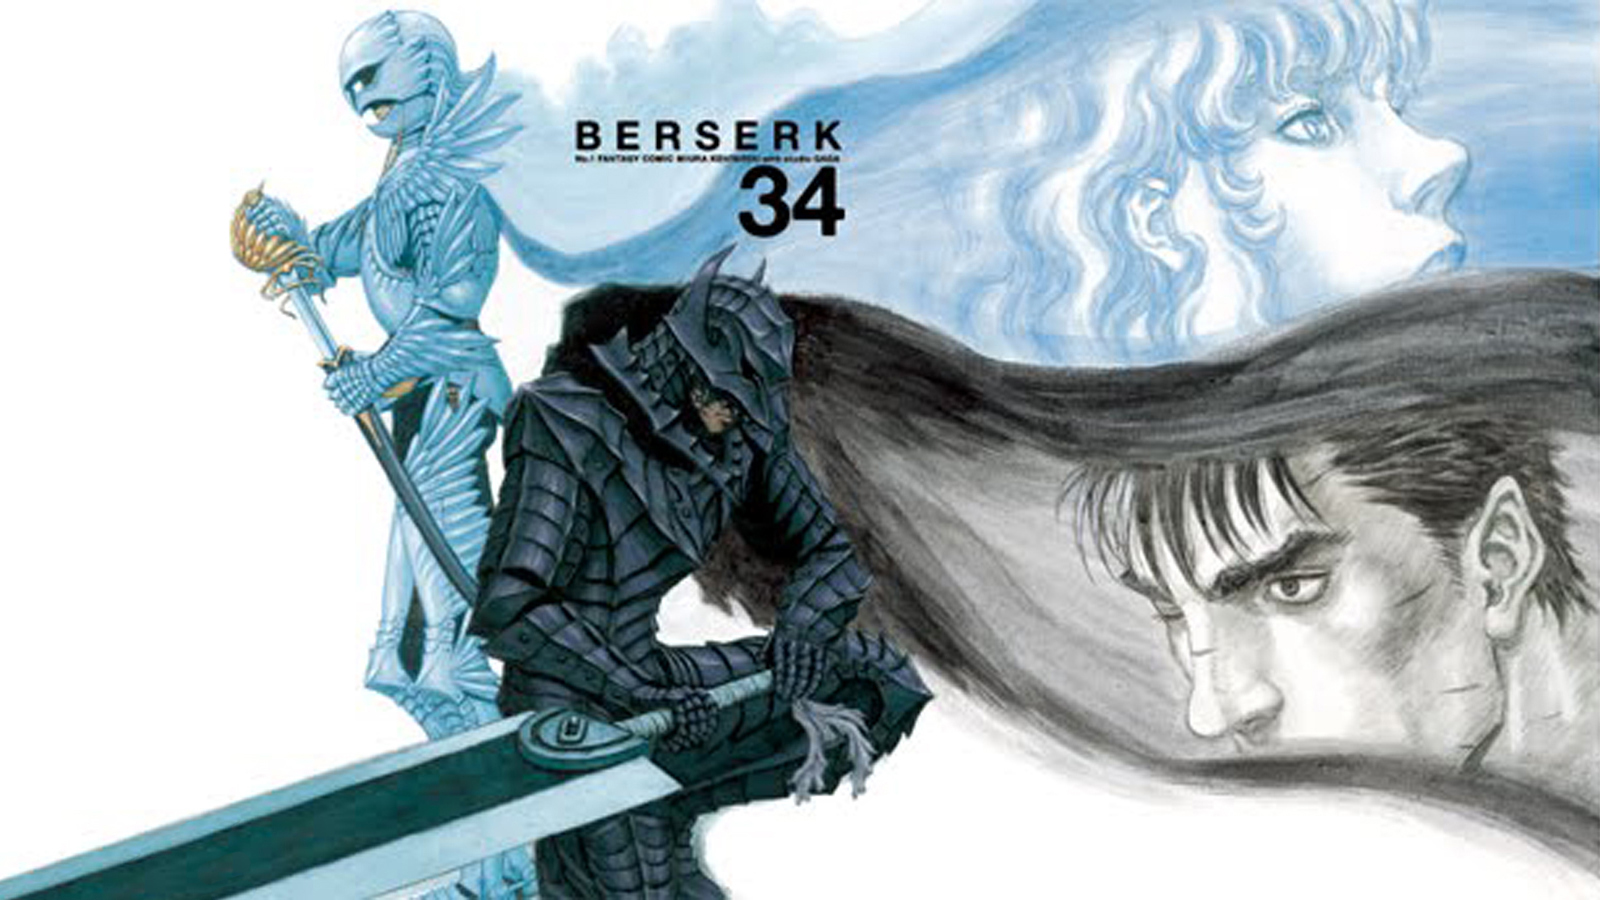 Guts Berserk Wallpaper Zerochan Anime Image Board